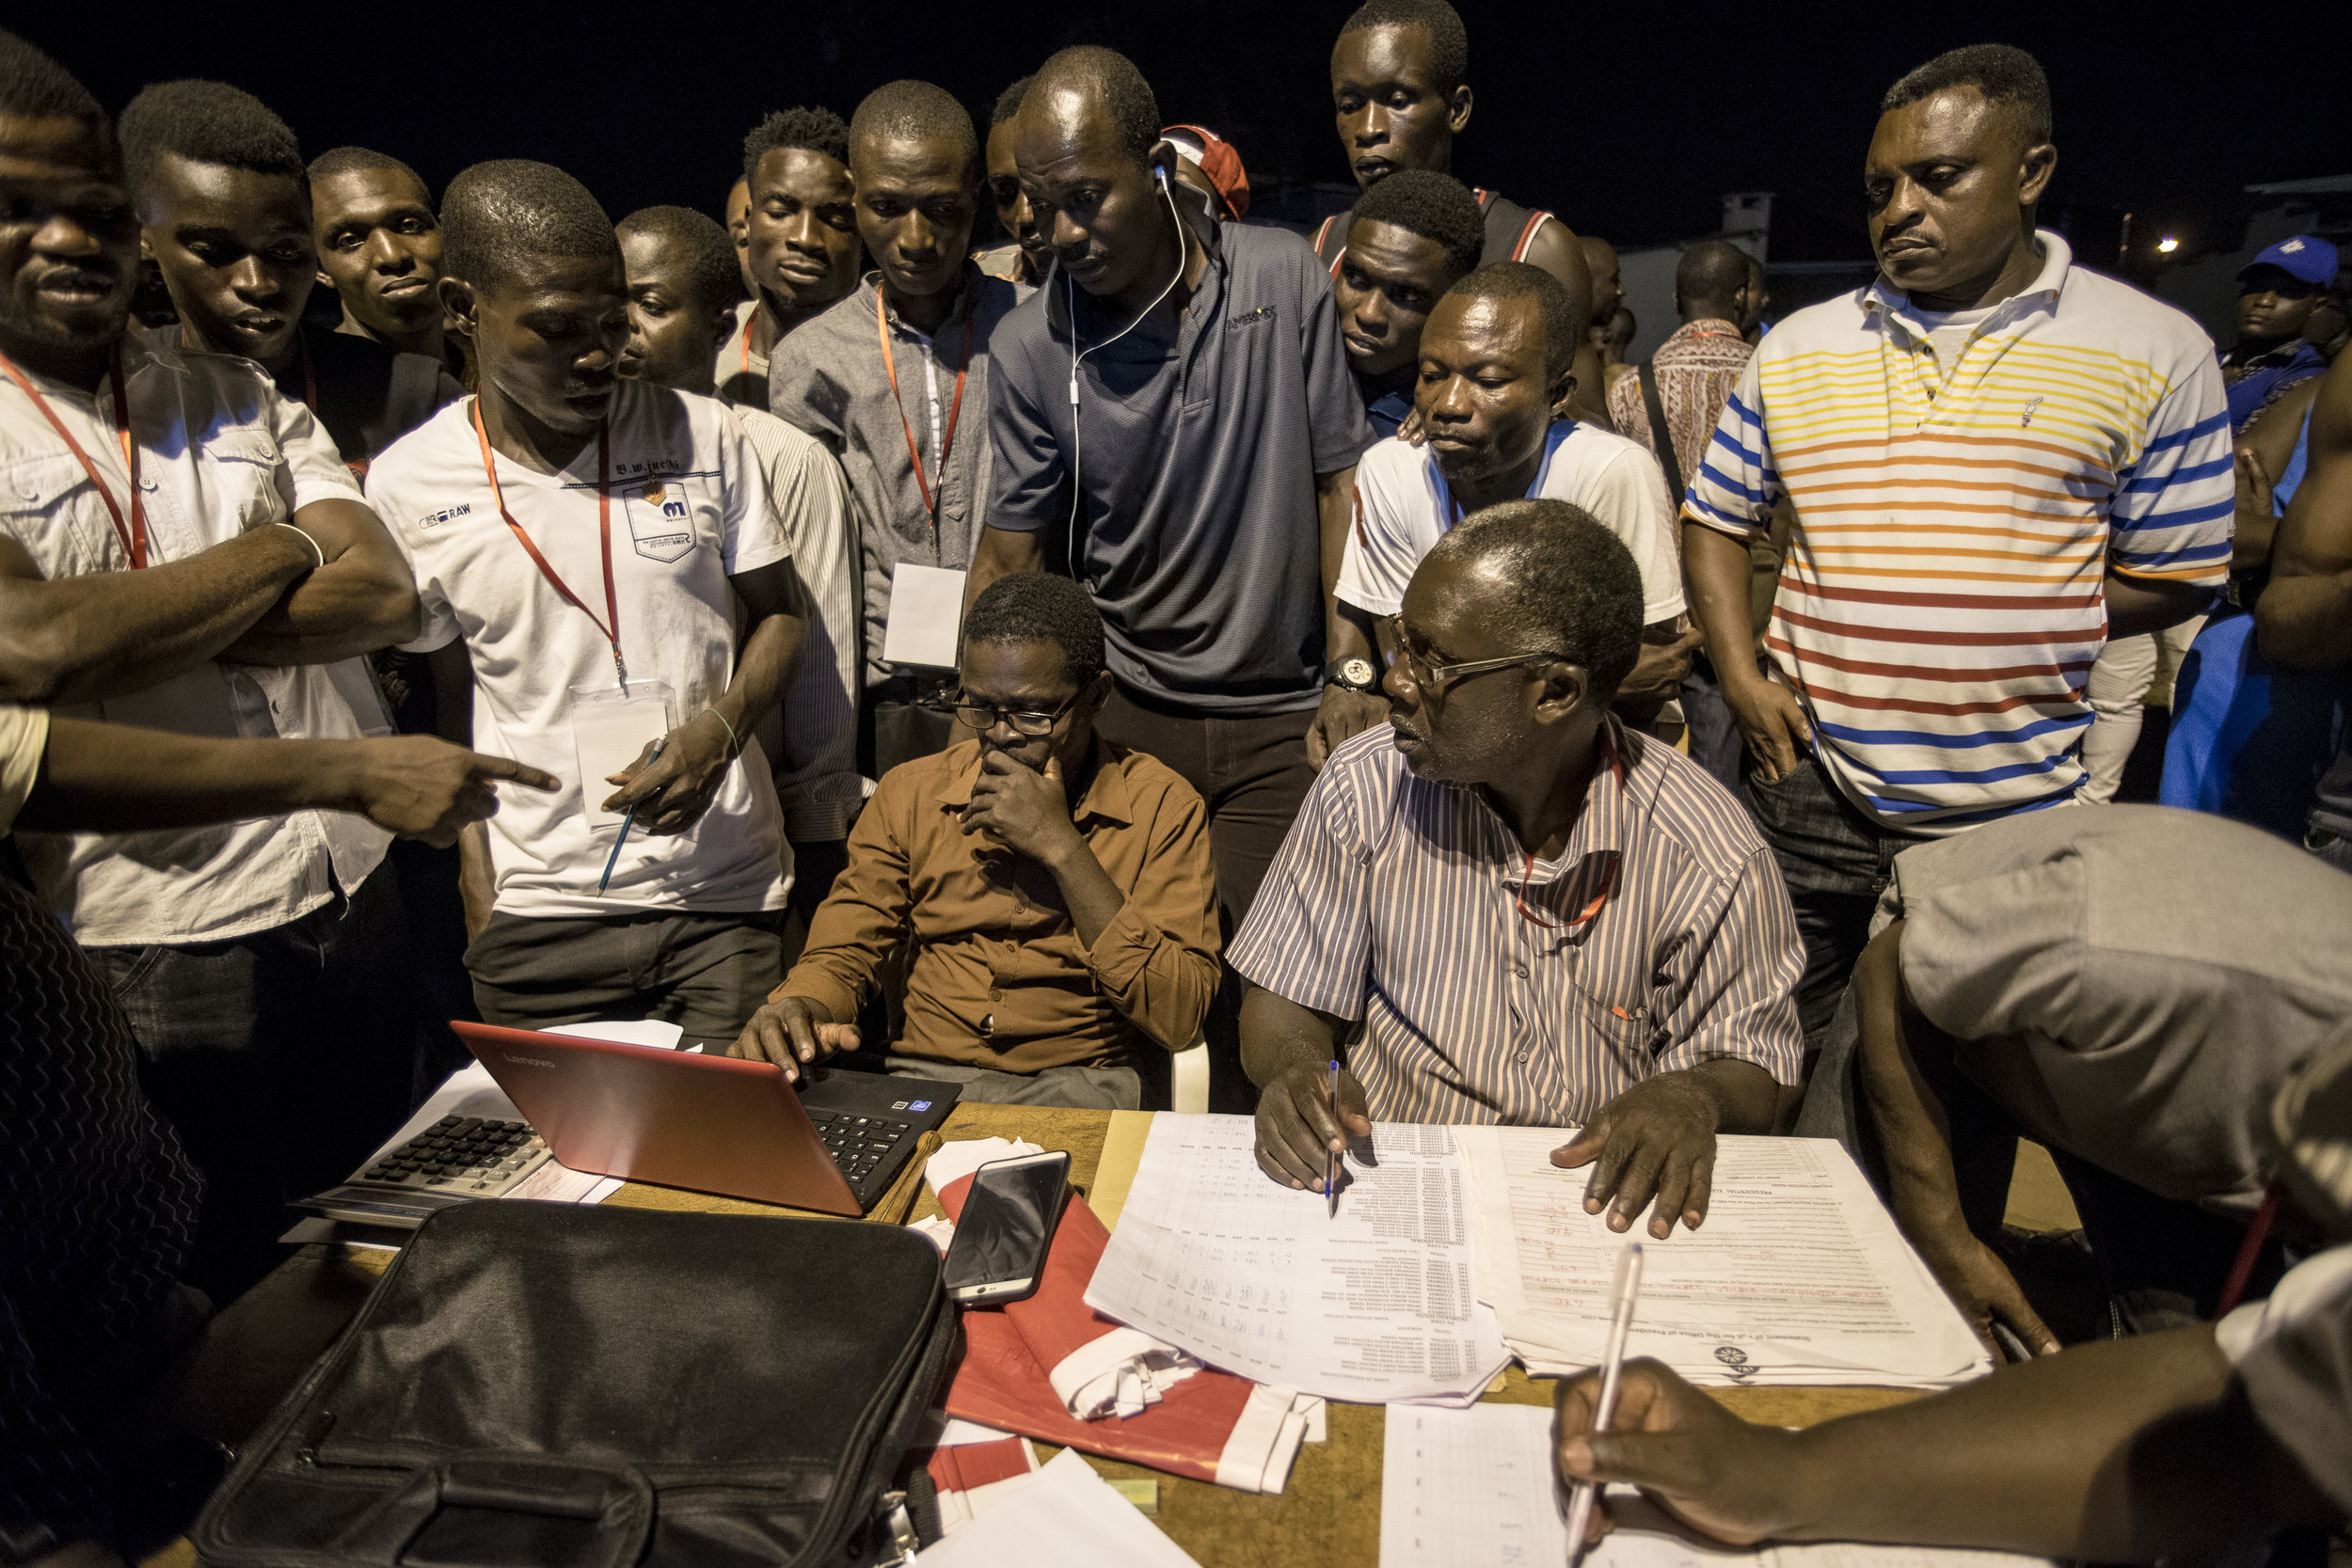 Election Commission officers gather in a Coalition Center in Teshie neighbourhood, Accra, to prepare for counting casted ballots